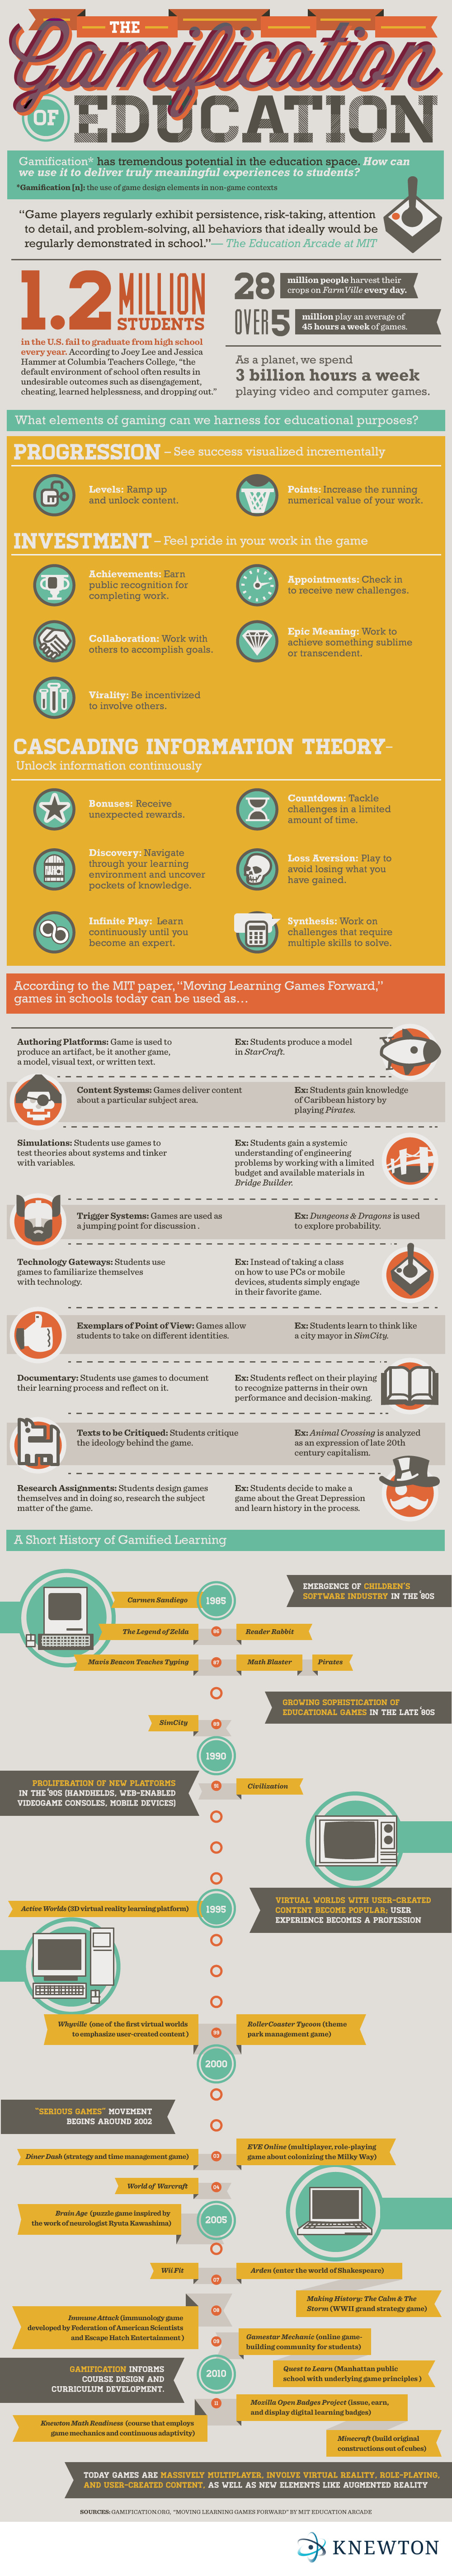 gamification-education-infographic-knewton